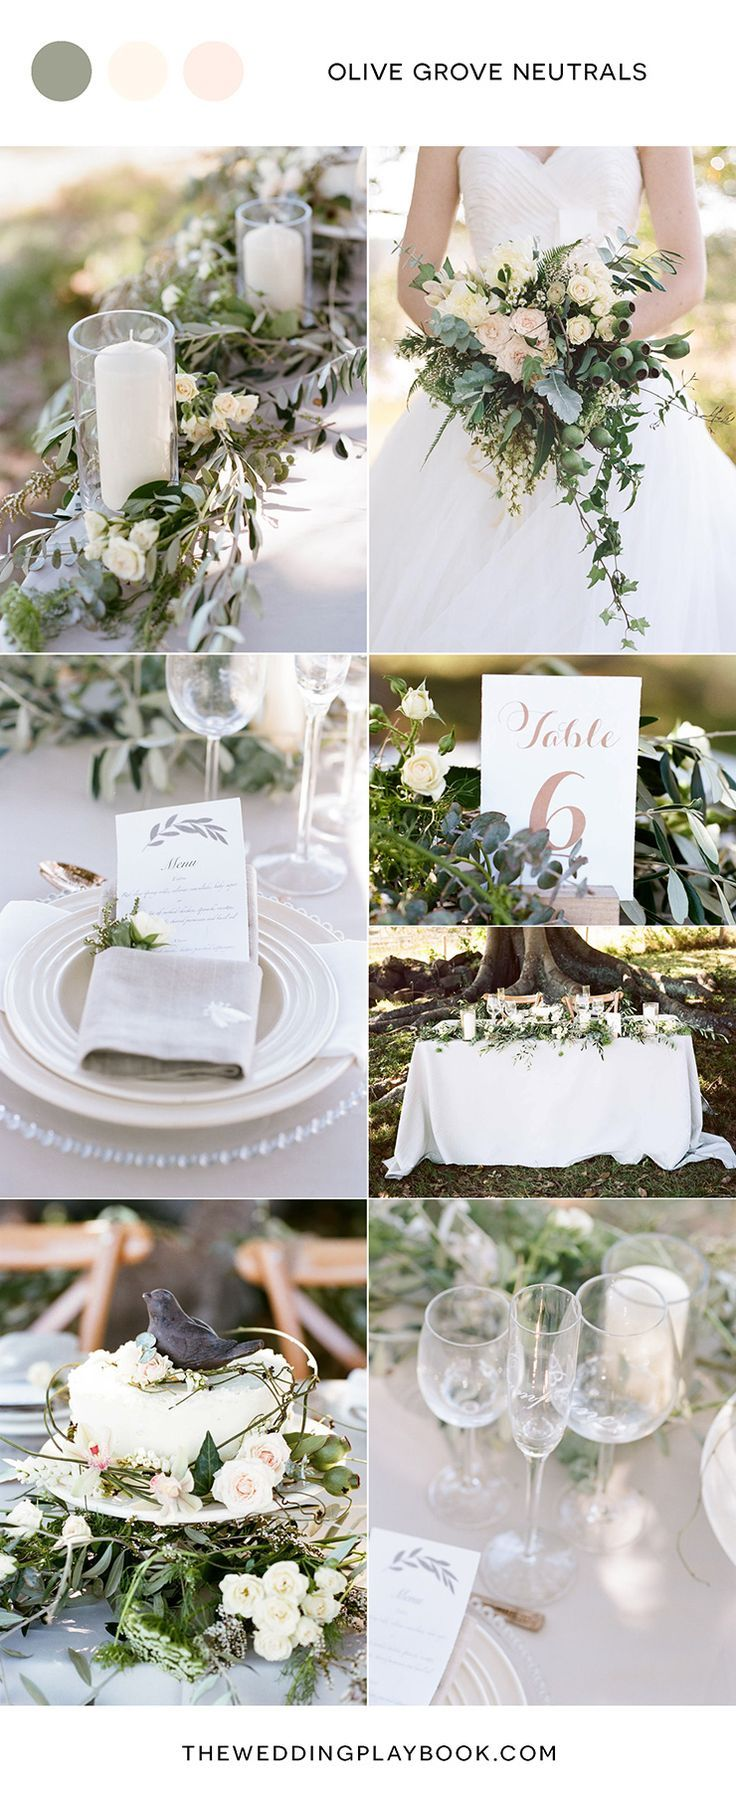 Olive Grove Wedding Inspiration in Soft Neutrals | Neutral and Weddings